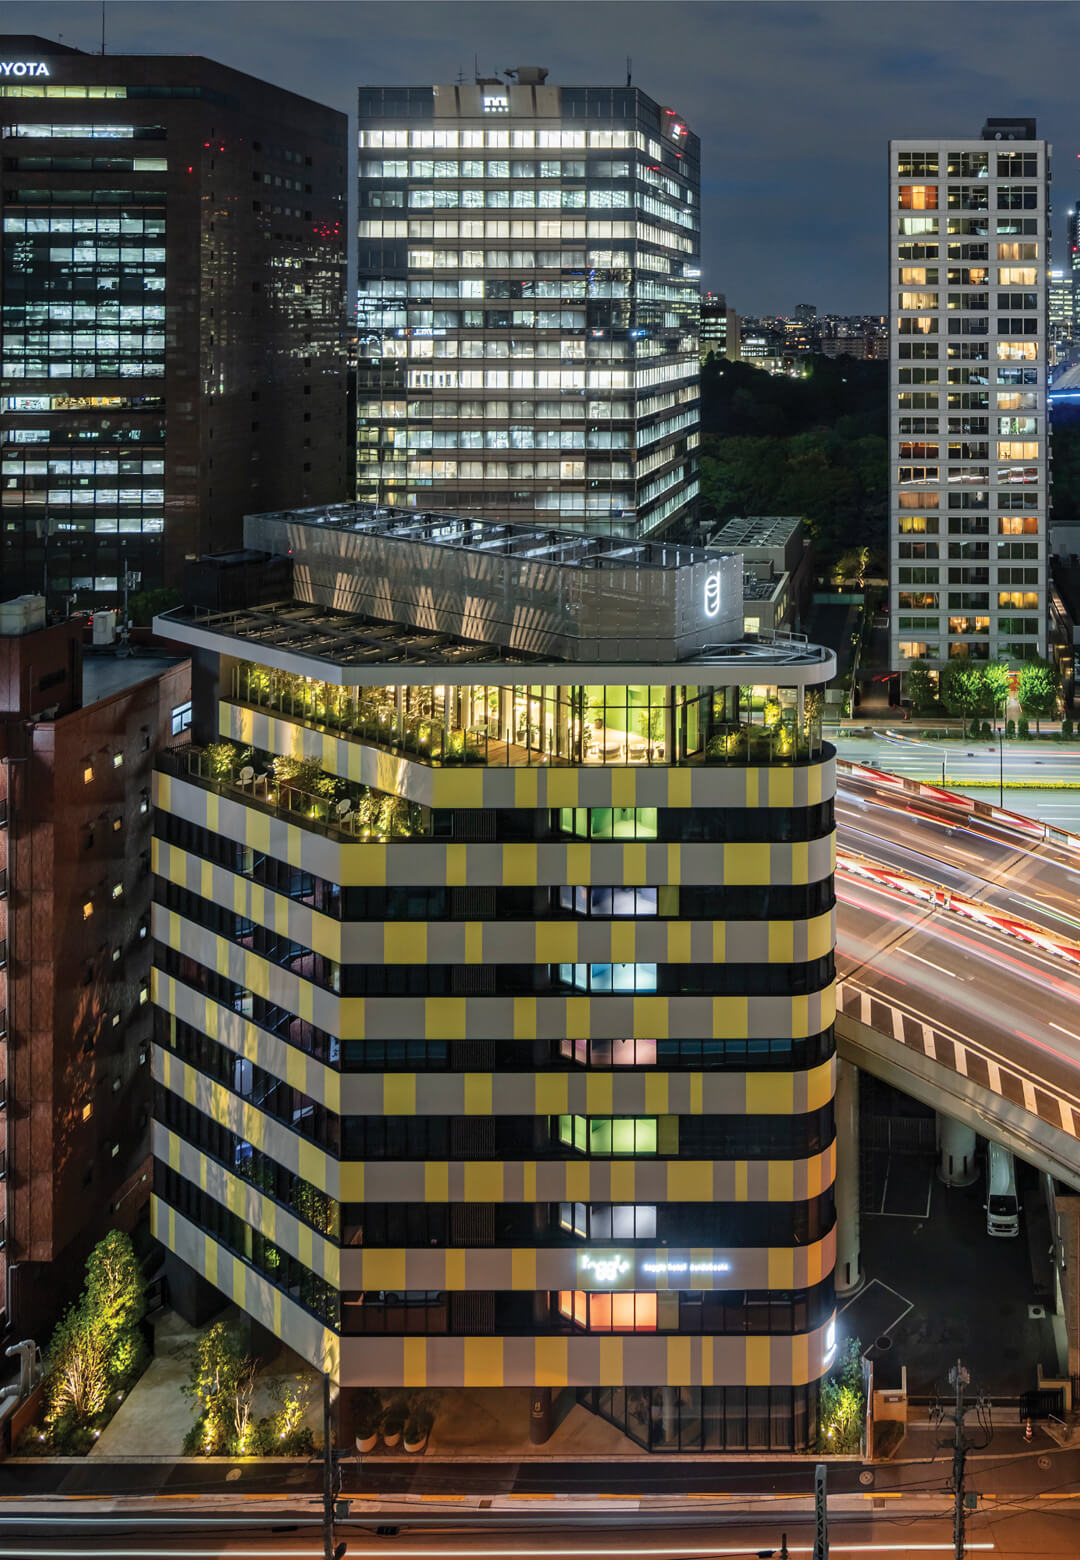 The Toggle Hotel by Klein Dytham Architecture is intended as a colourful, dynamic intervention in the heart of Tokyo | Toggle Hotel | Klein Dytham Architecture | STIRworld